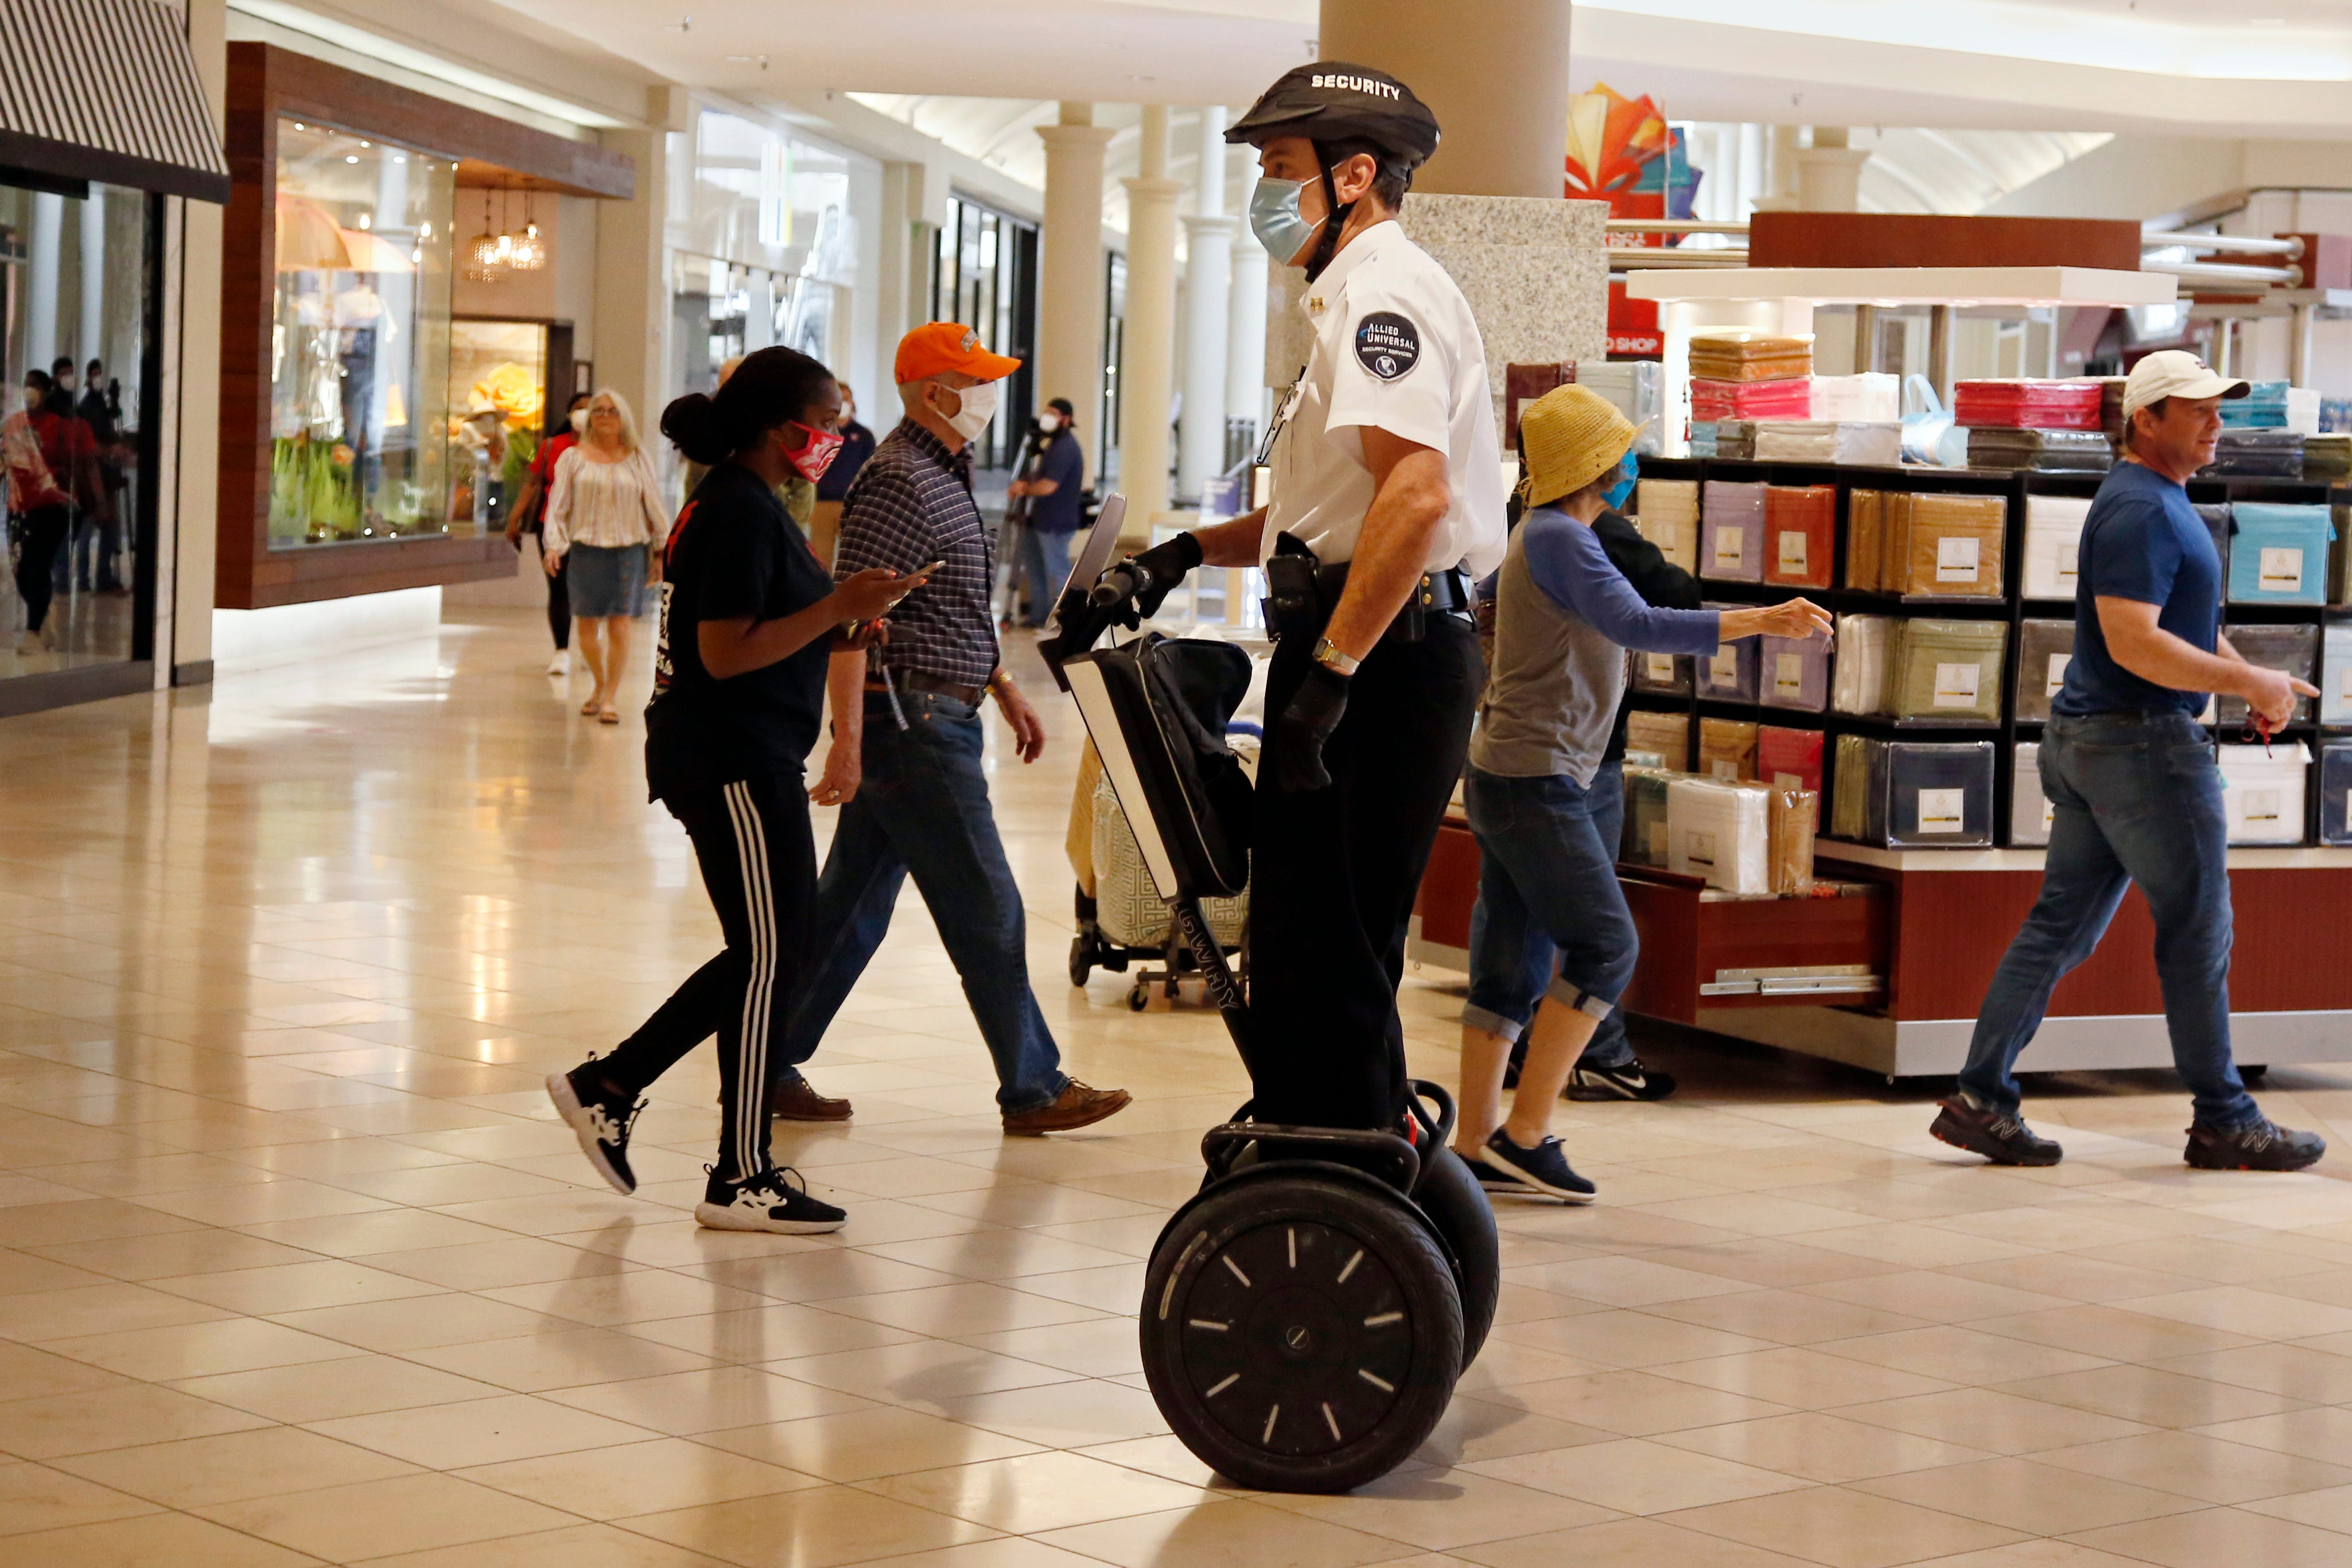 Store closings could speed up death of America's malls, retail changes